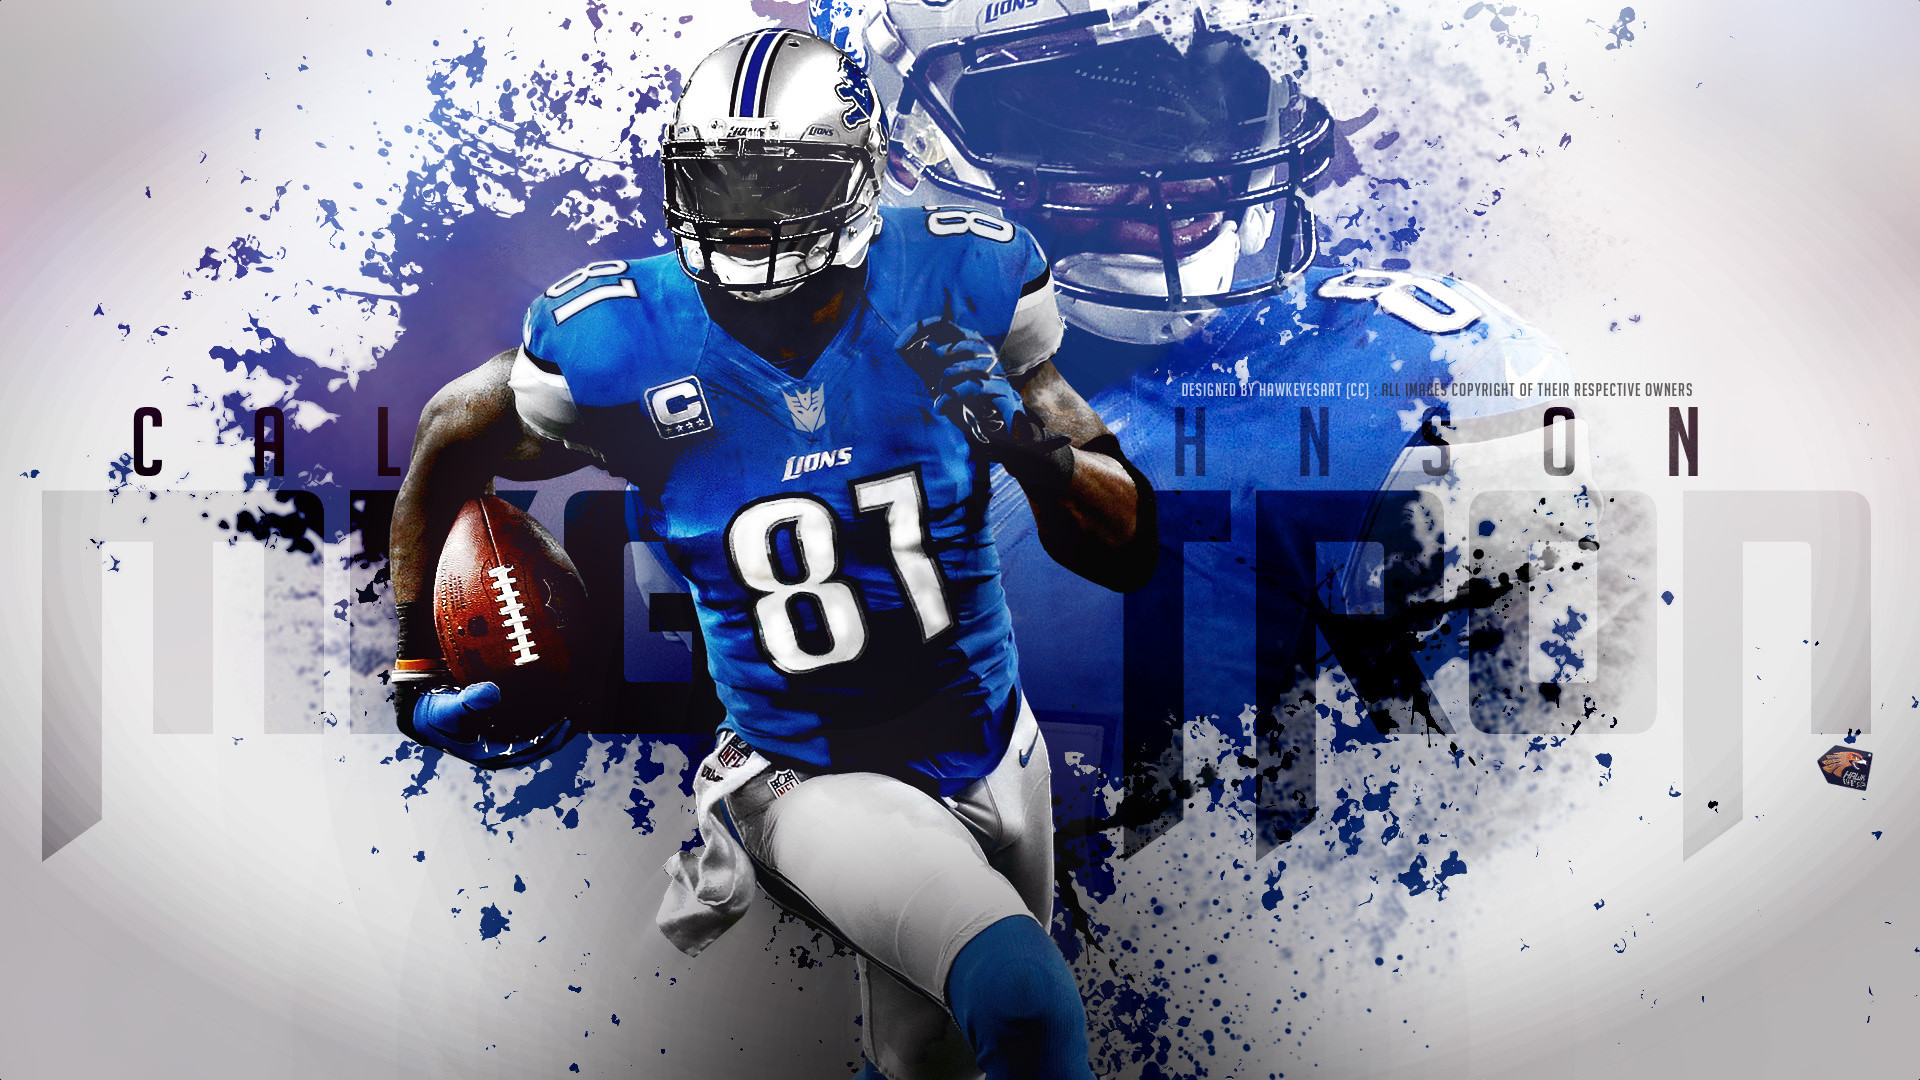 Black Ladainian Tomlinson Wallpaper CoolWall 1800×1200 NFL Players  Wallpapers (38 Wallpapers) |